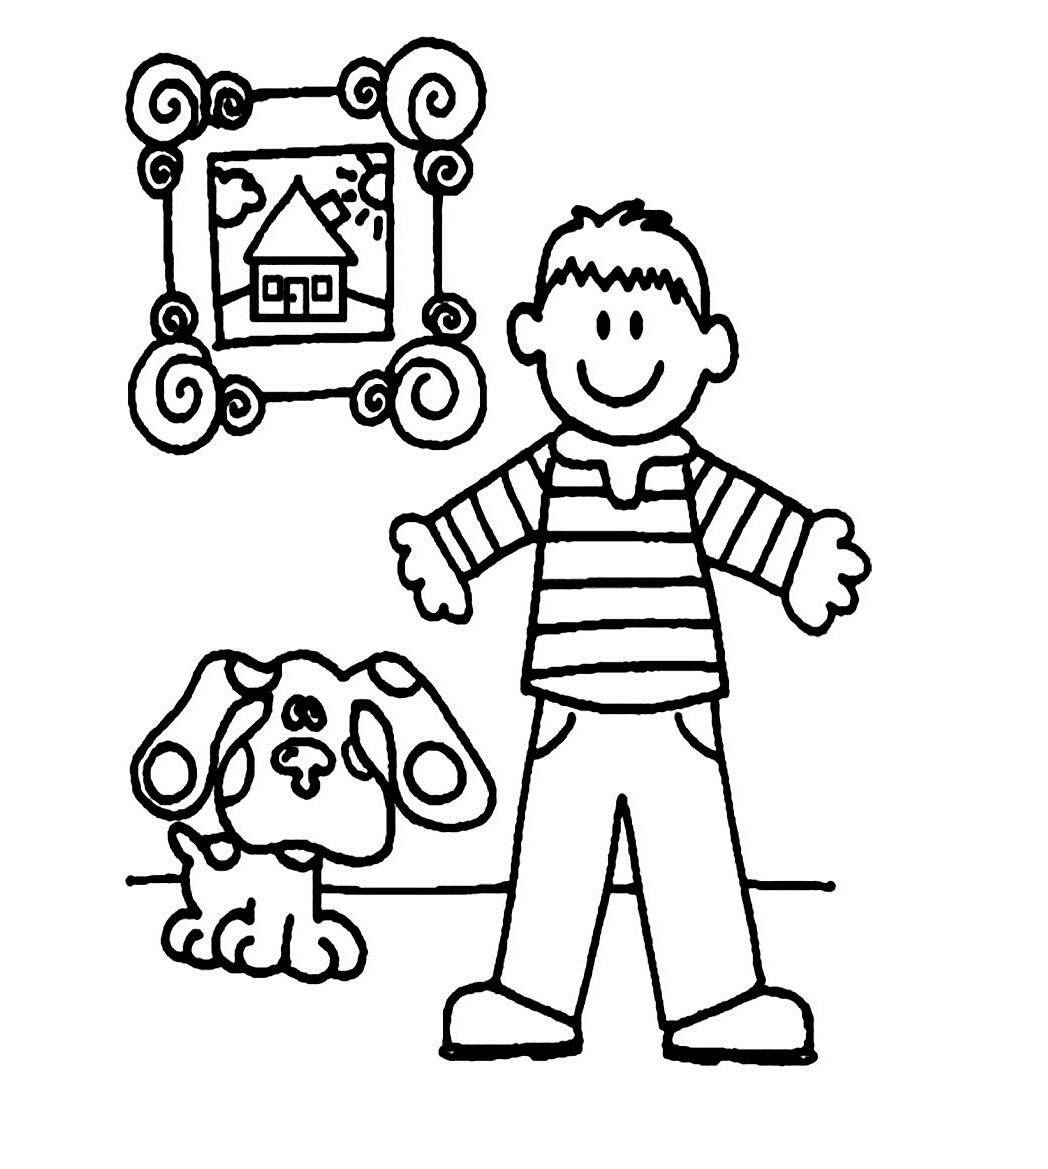 coloring pages kids boys - photo#12